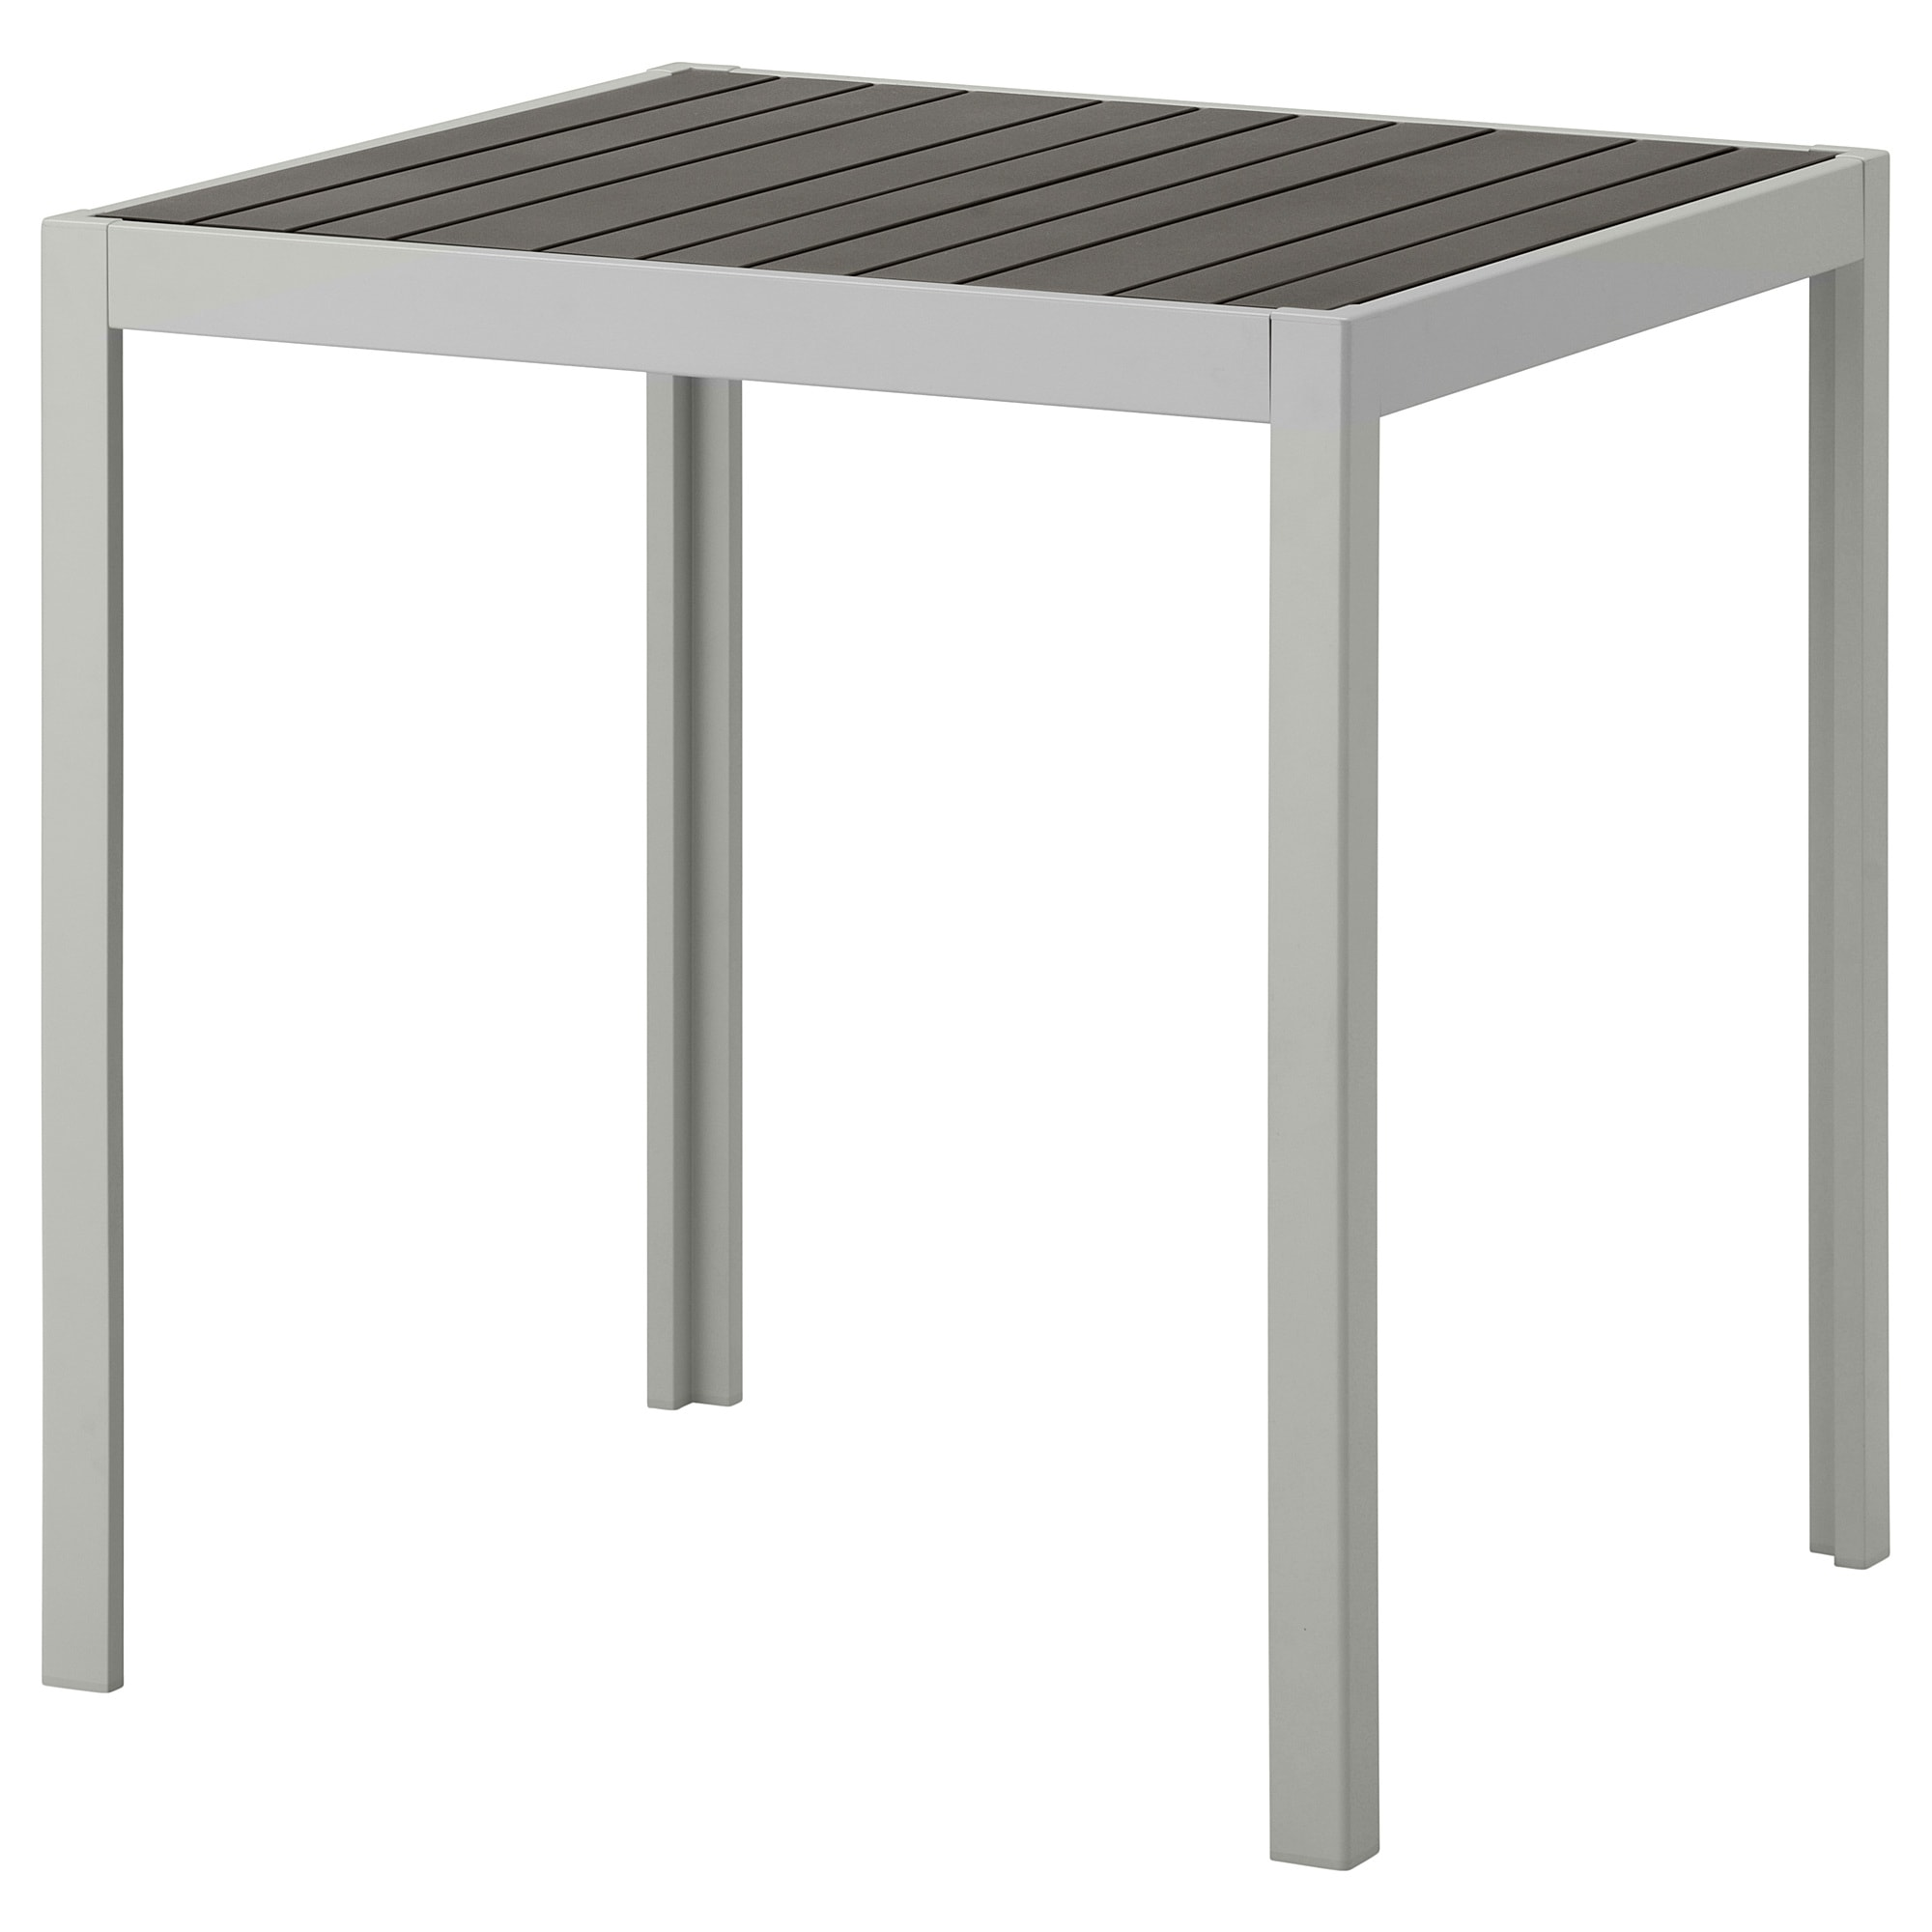 outdoor table. Inter IKEA Systems B.V. 1999 - 2018 | Privacy Policy Outdoor Table Ikea